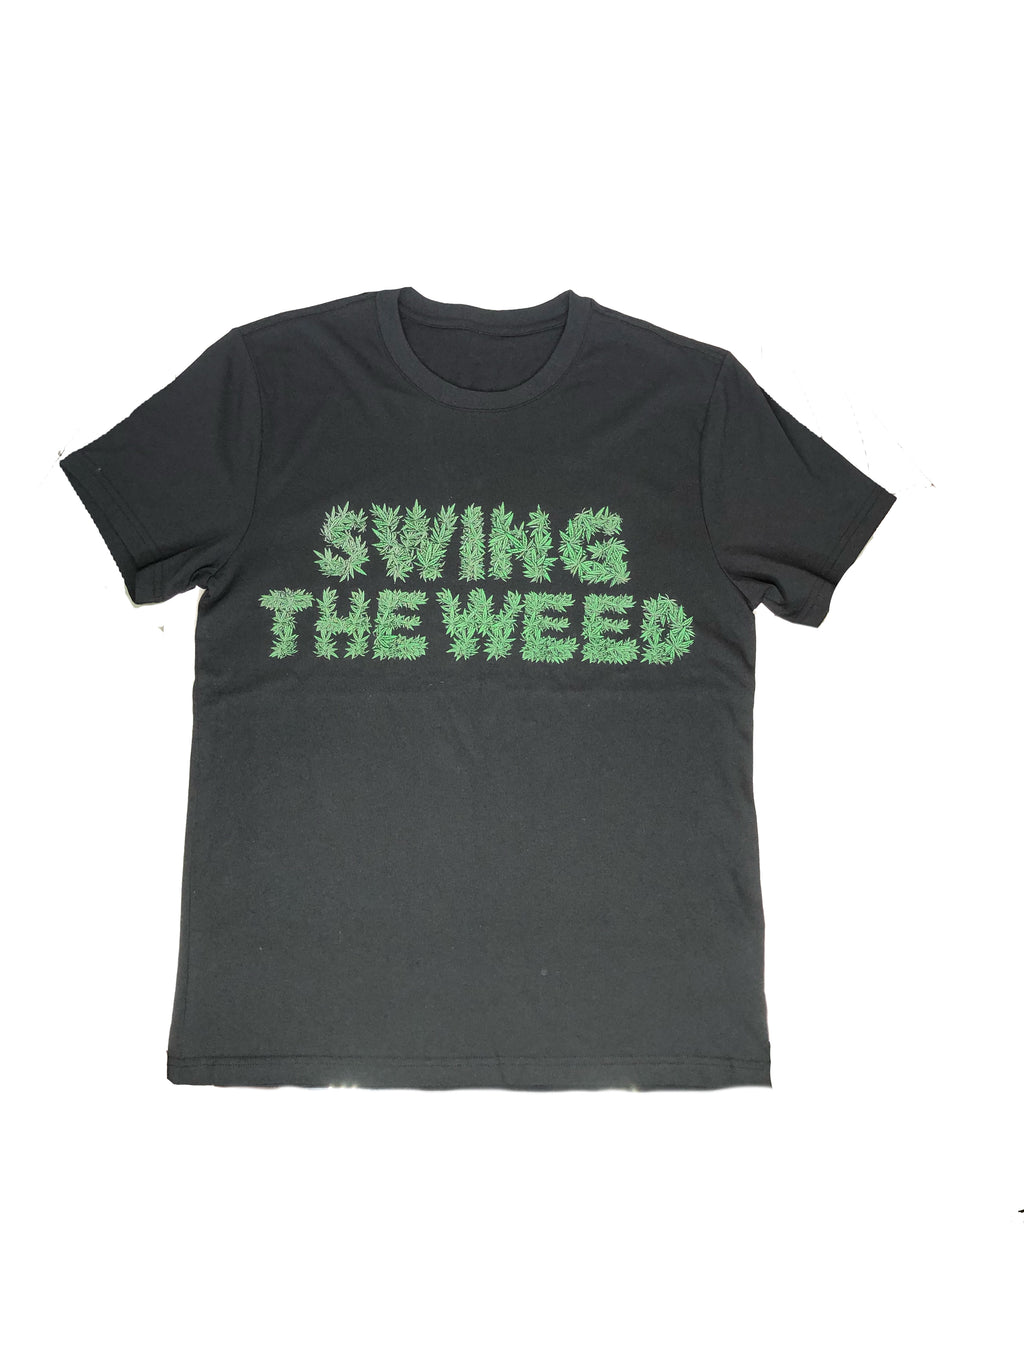 Swing The Weed T-shirt